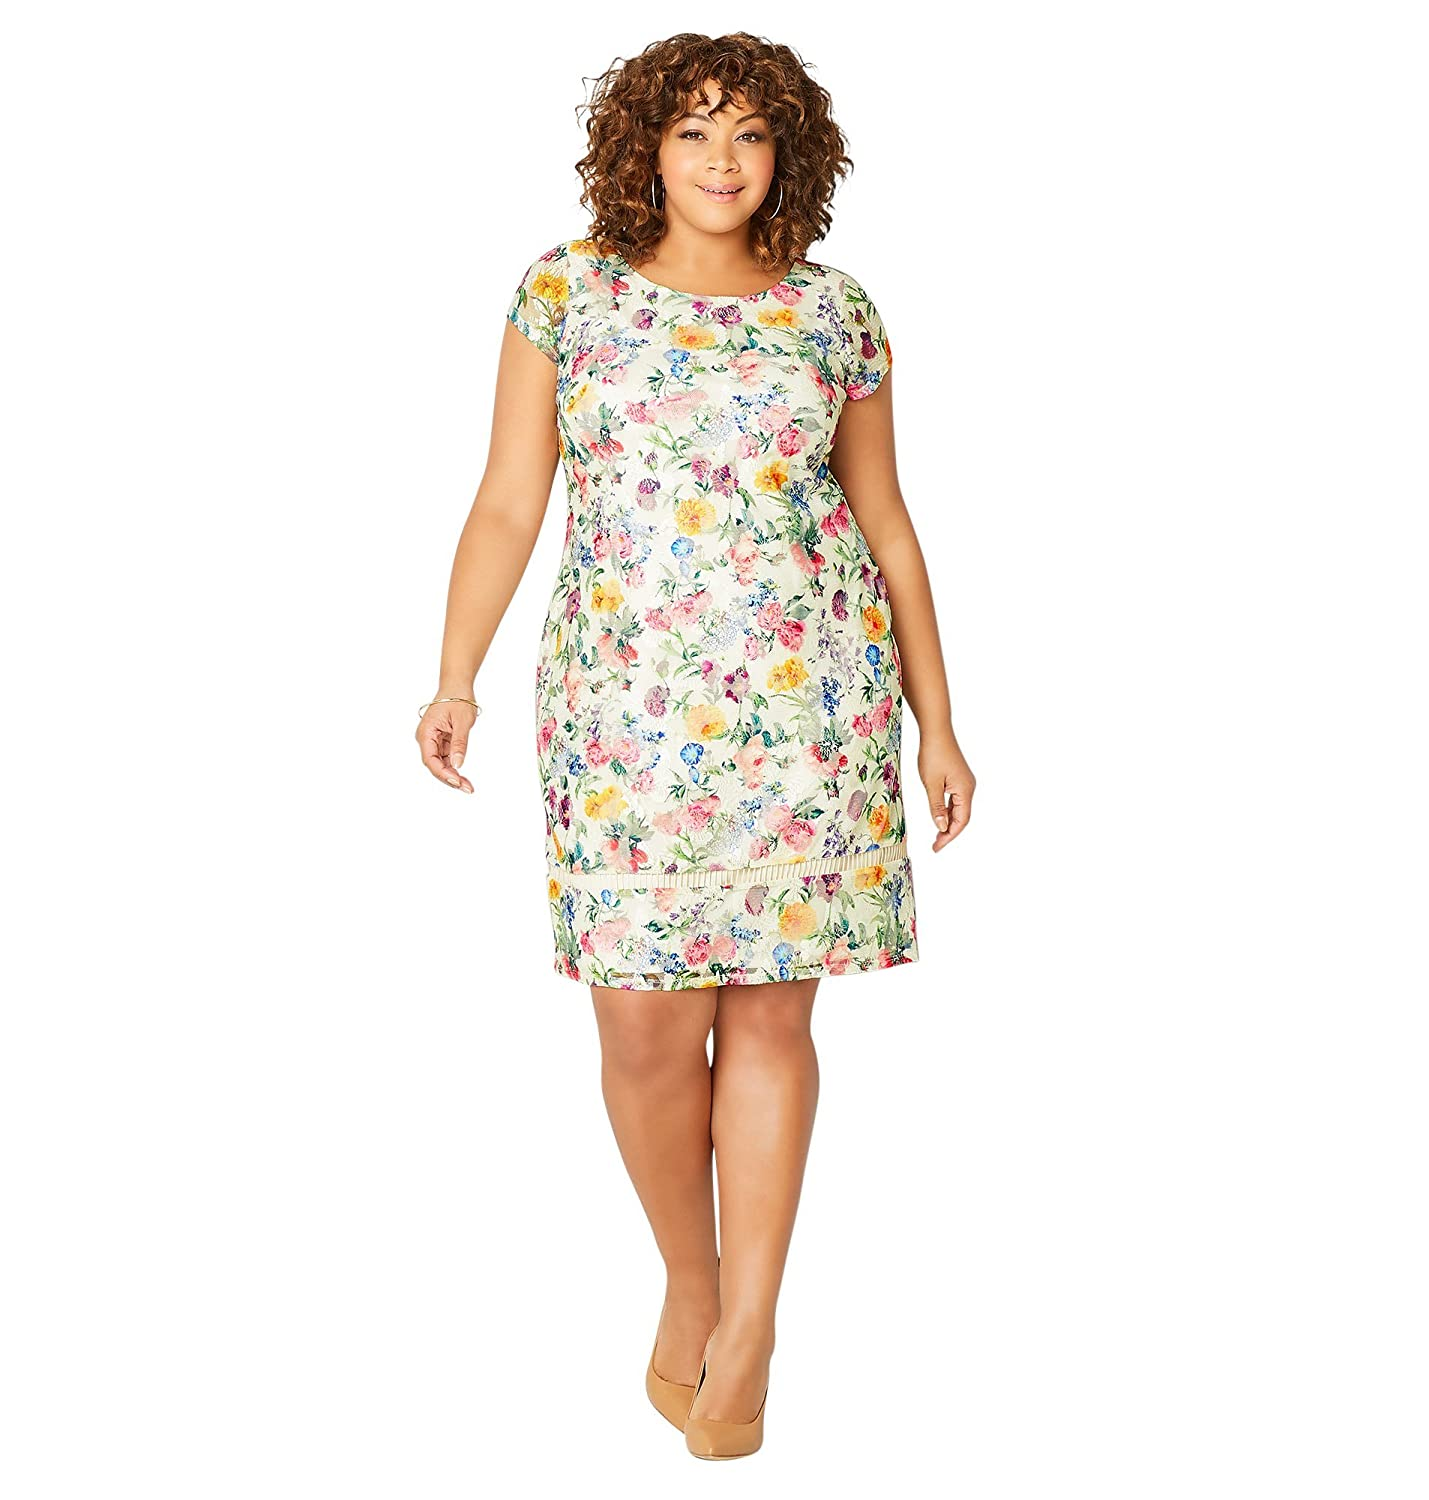 fd5f79d5a9 Top 10 wholesale Short Dress With Flowers - Chinabrands.com